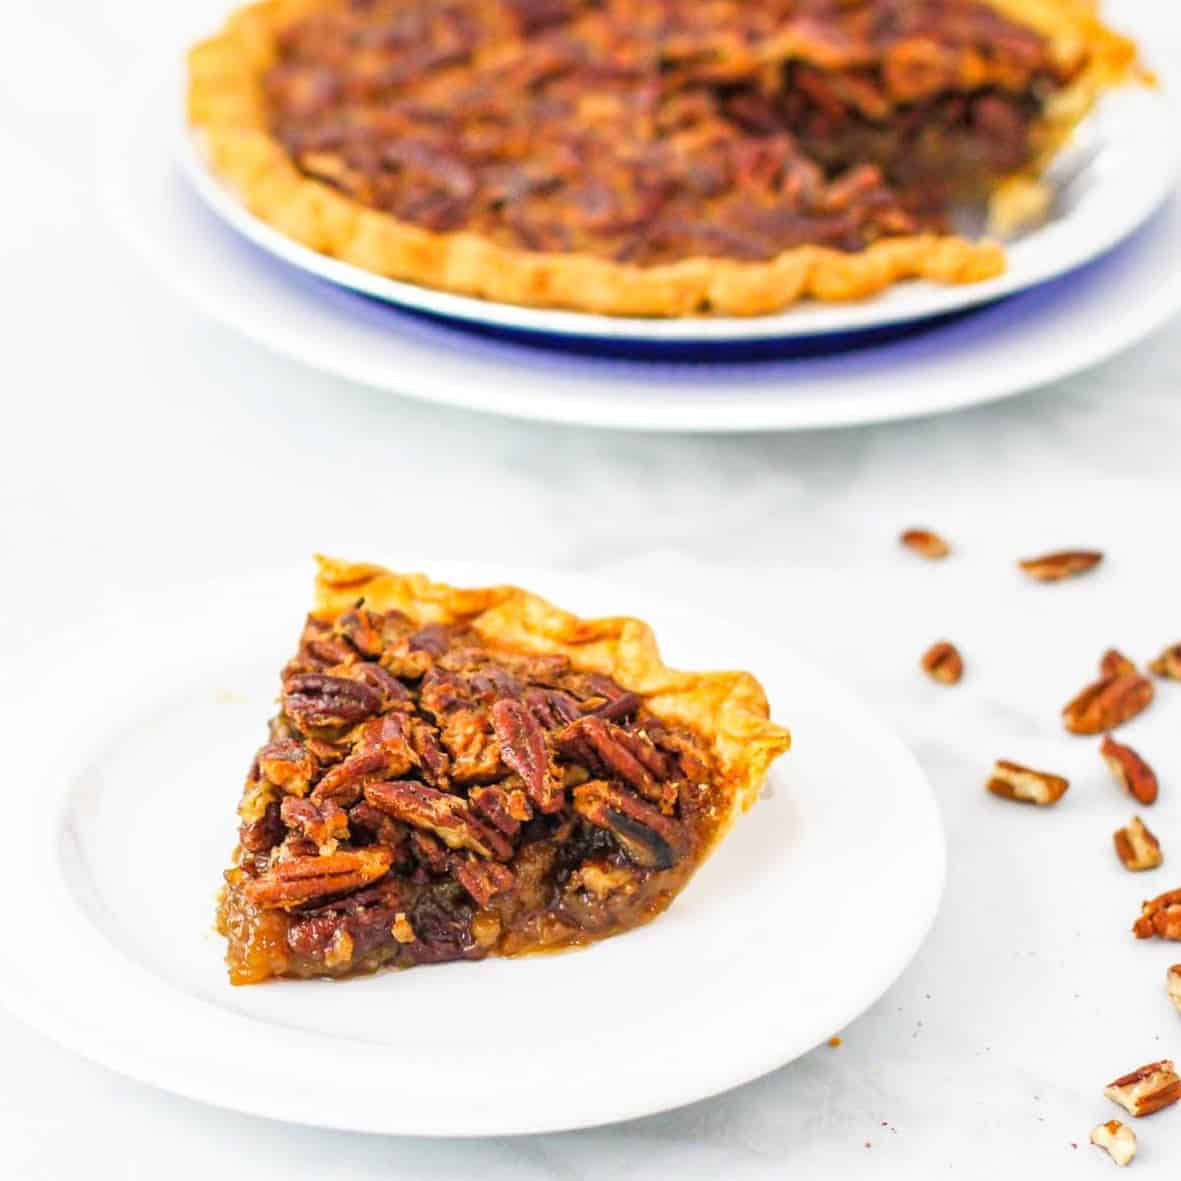 Side angle view of a large slice of pecan pie set next to the whole pie dish.